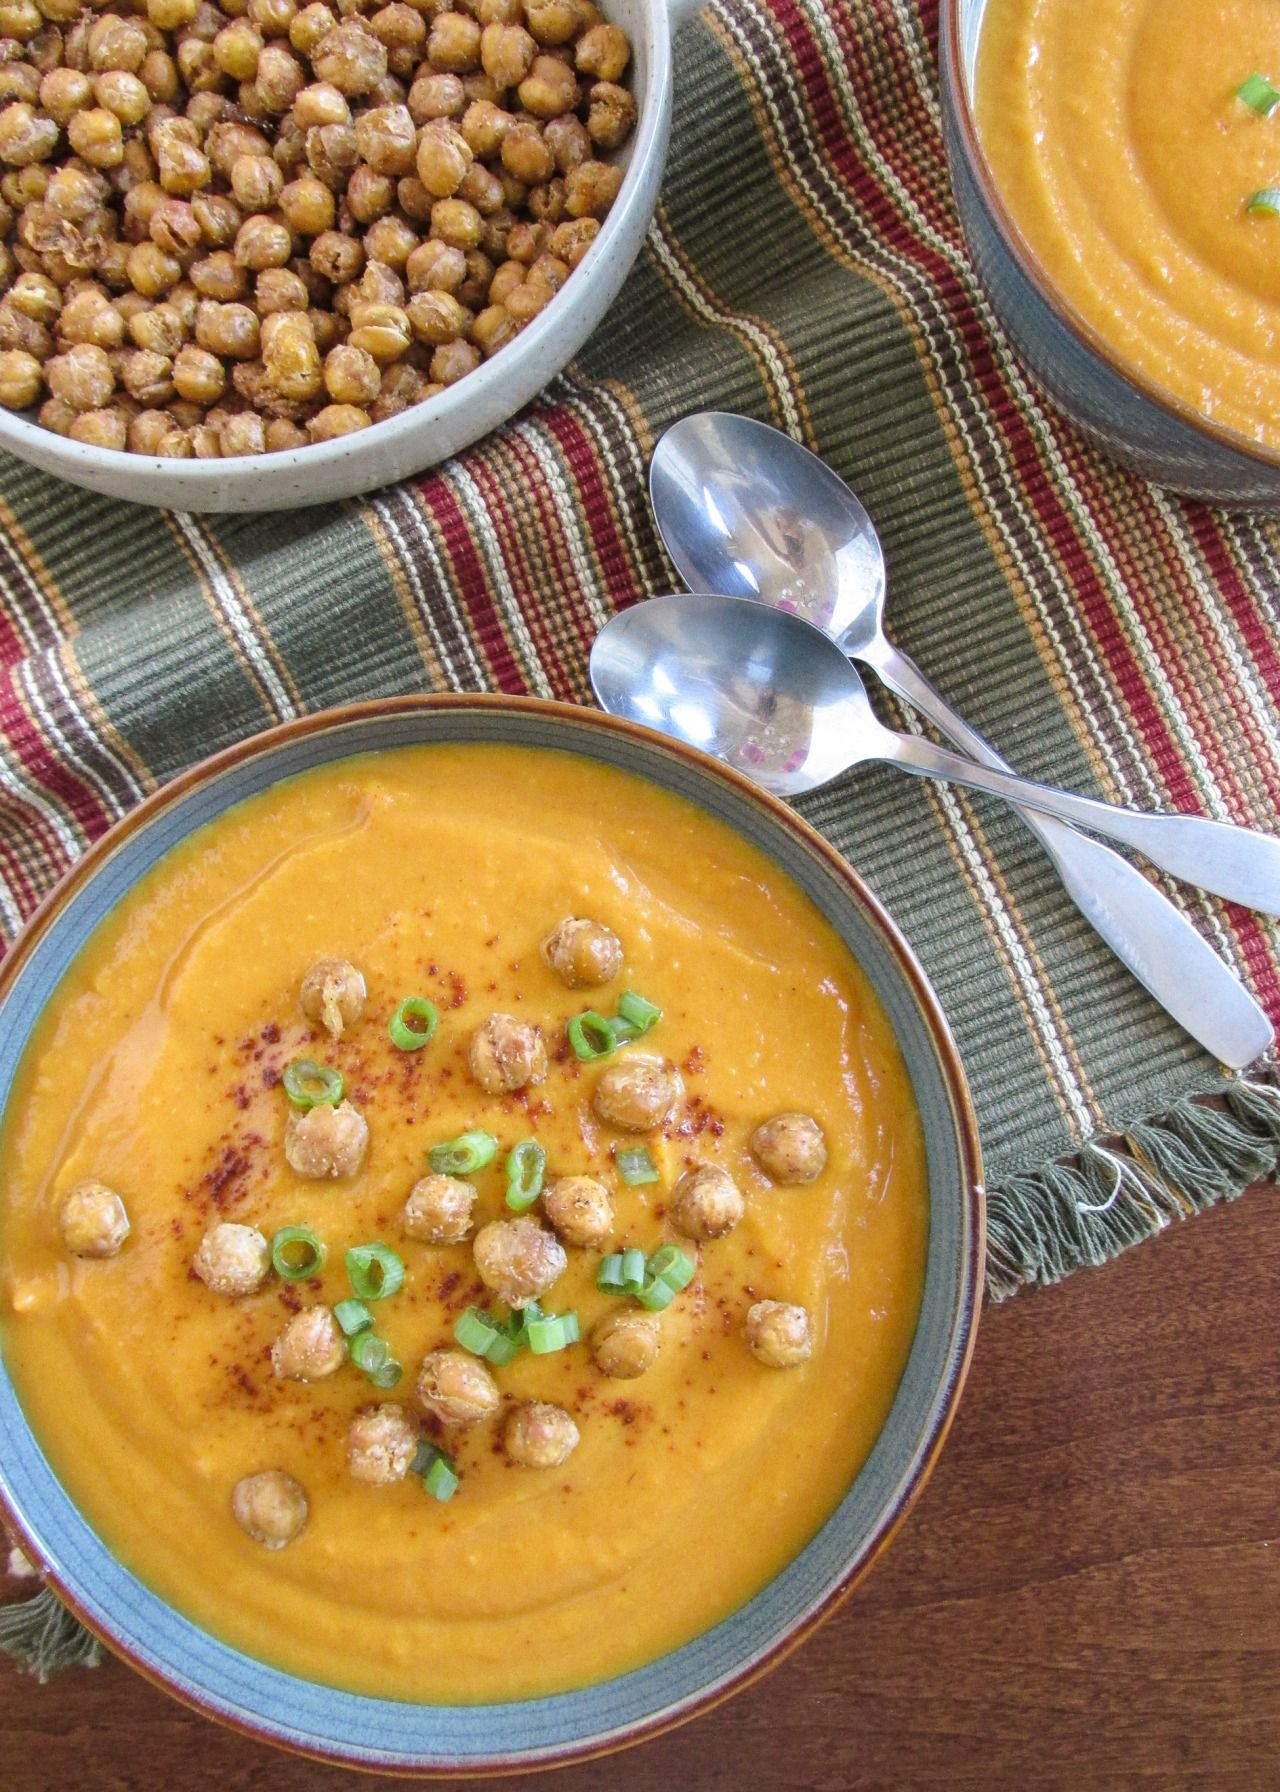 beautifulpicturesofhealthyfood:  Email Submission Creamy Gingered Sweet Potato and Carrot Soup with Spicy Roasted Garbanzo Beans - Easy vegan, crock pot recipe